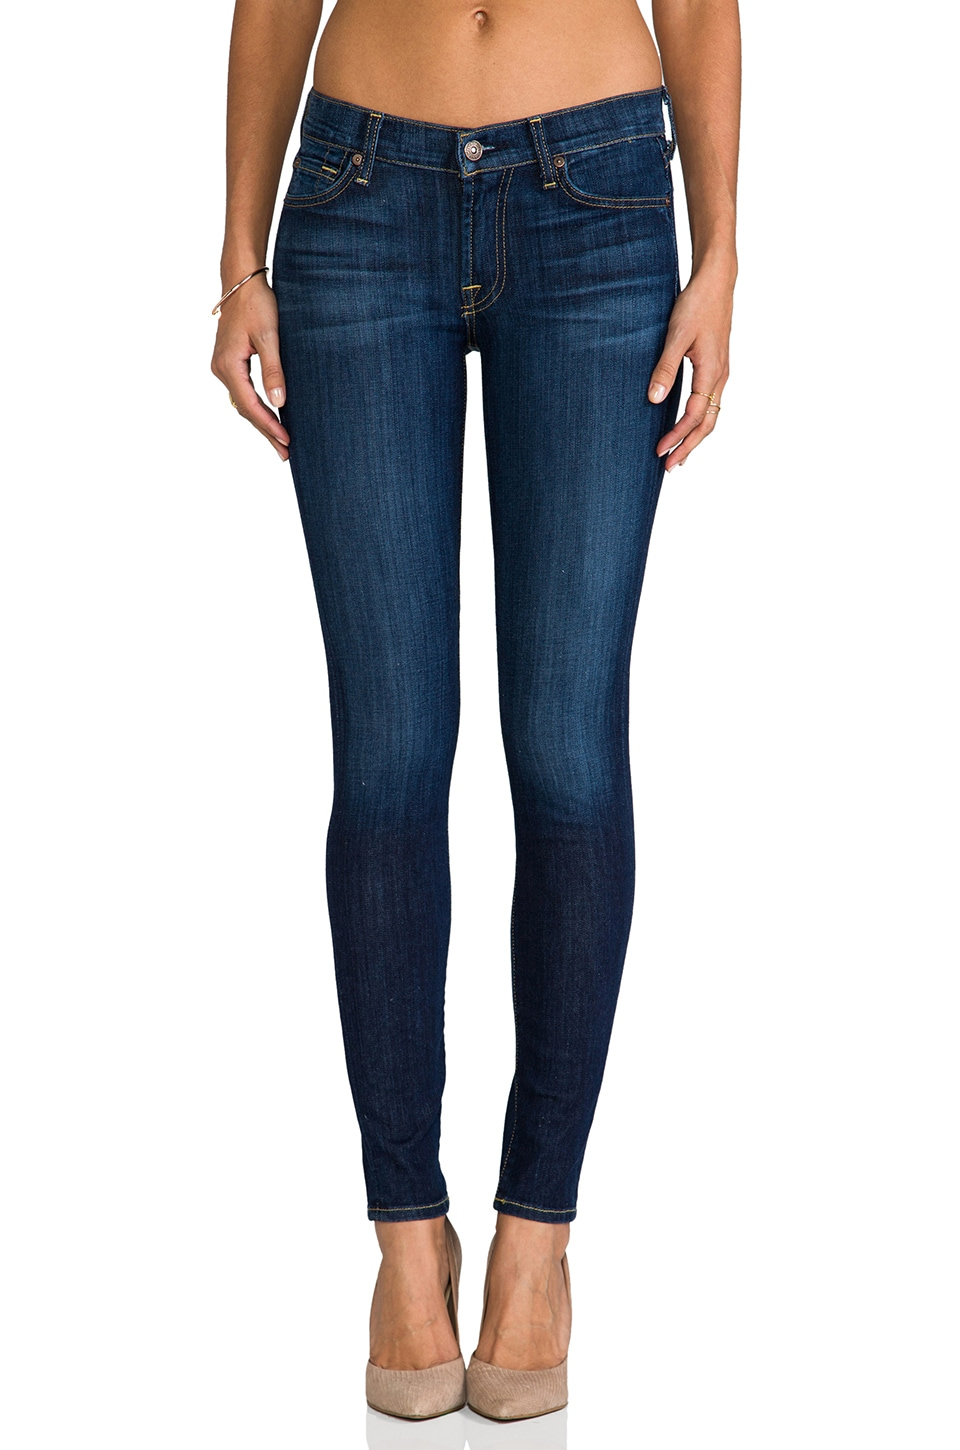 7 For All Mankind The Skinny in Nouveau New York Dark | REVOLVE